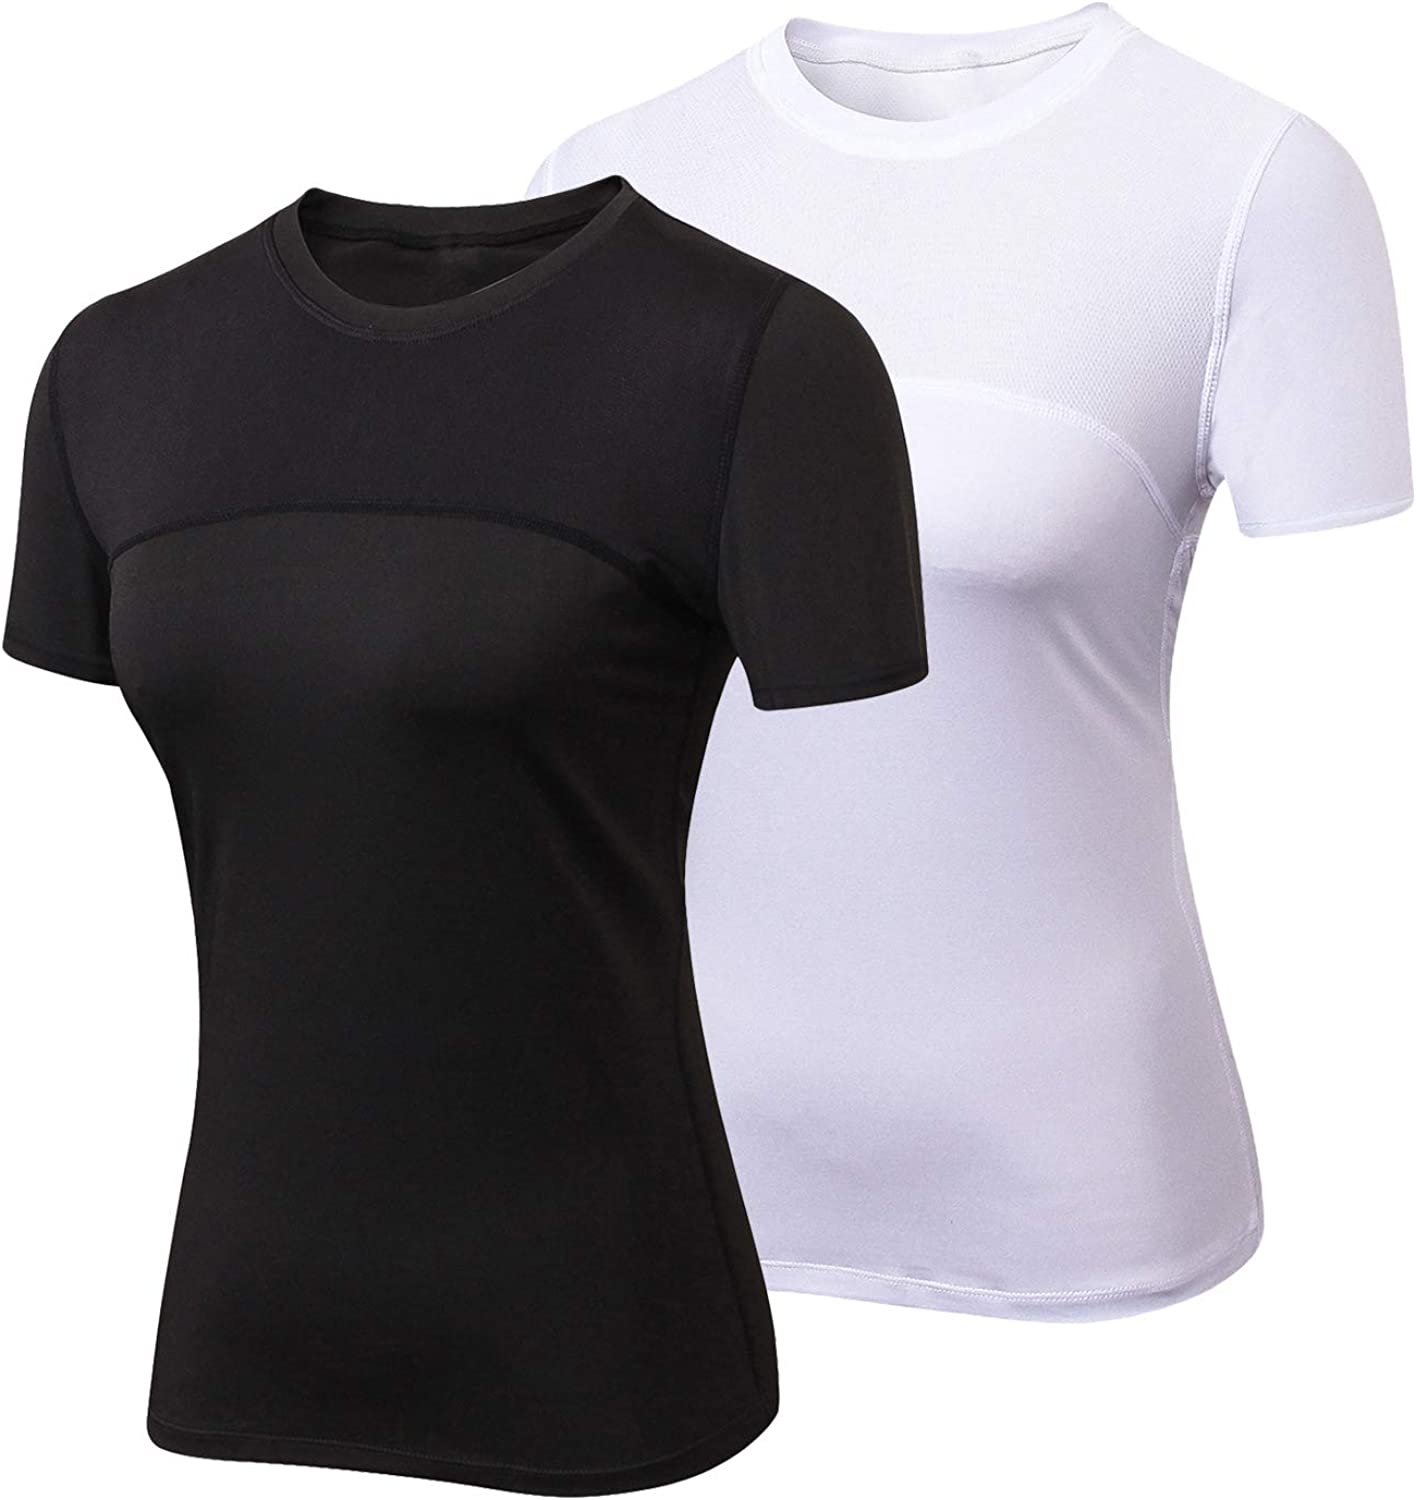 Spring new work Women Workout Shirt Dry Fit Short Sport Tops All items in the store Sleeve Compression